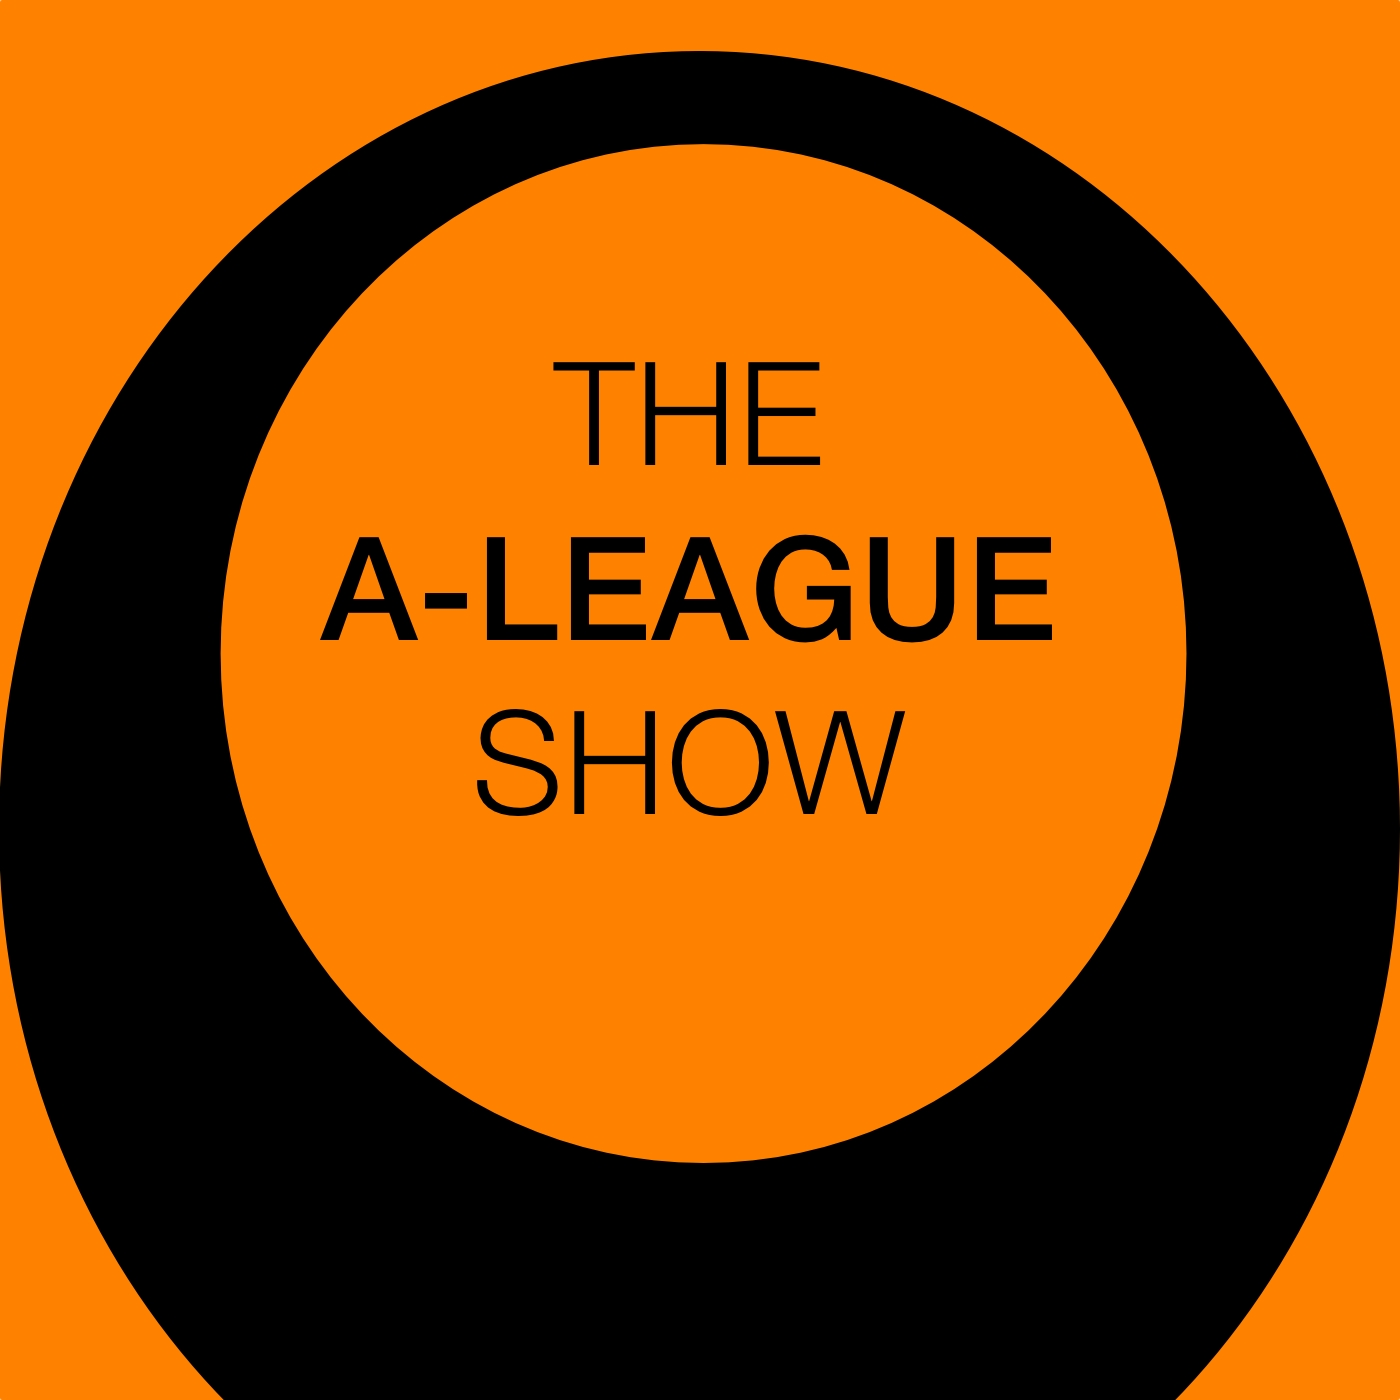 The-A-League-Show-1.jpg